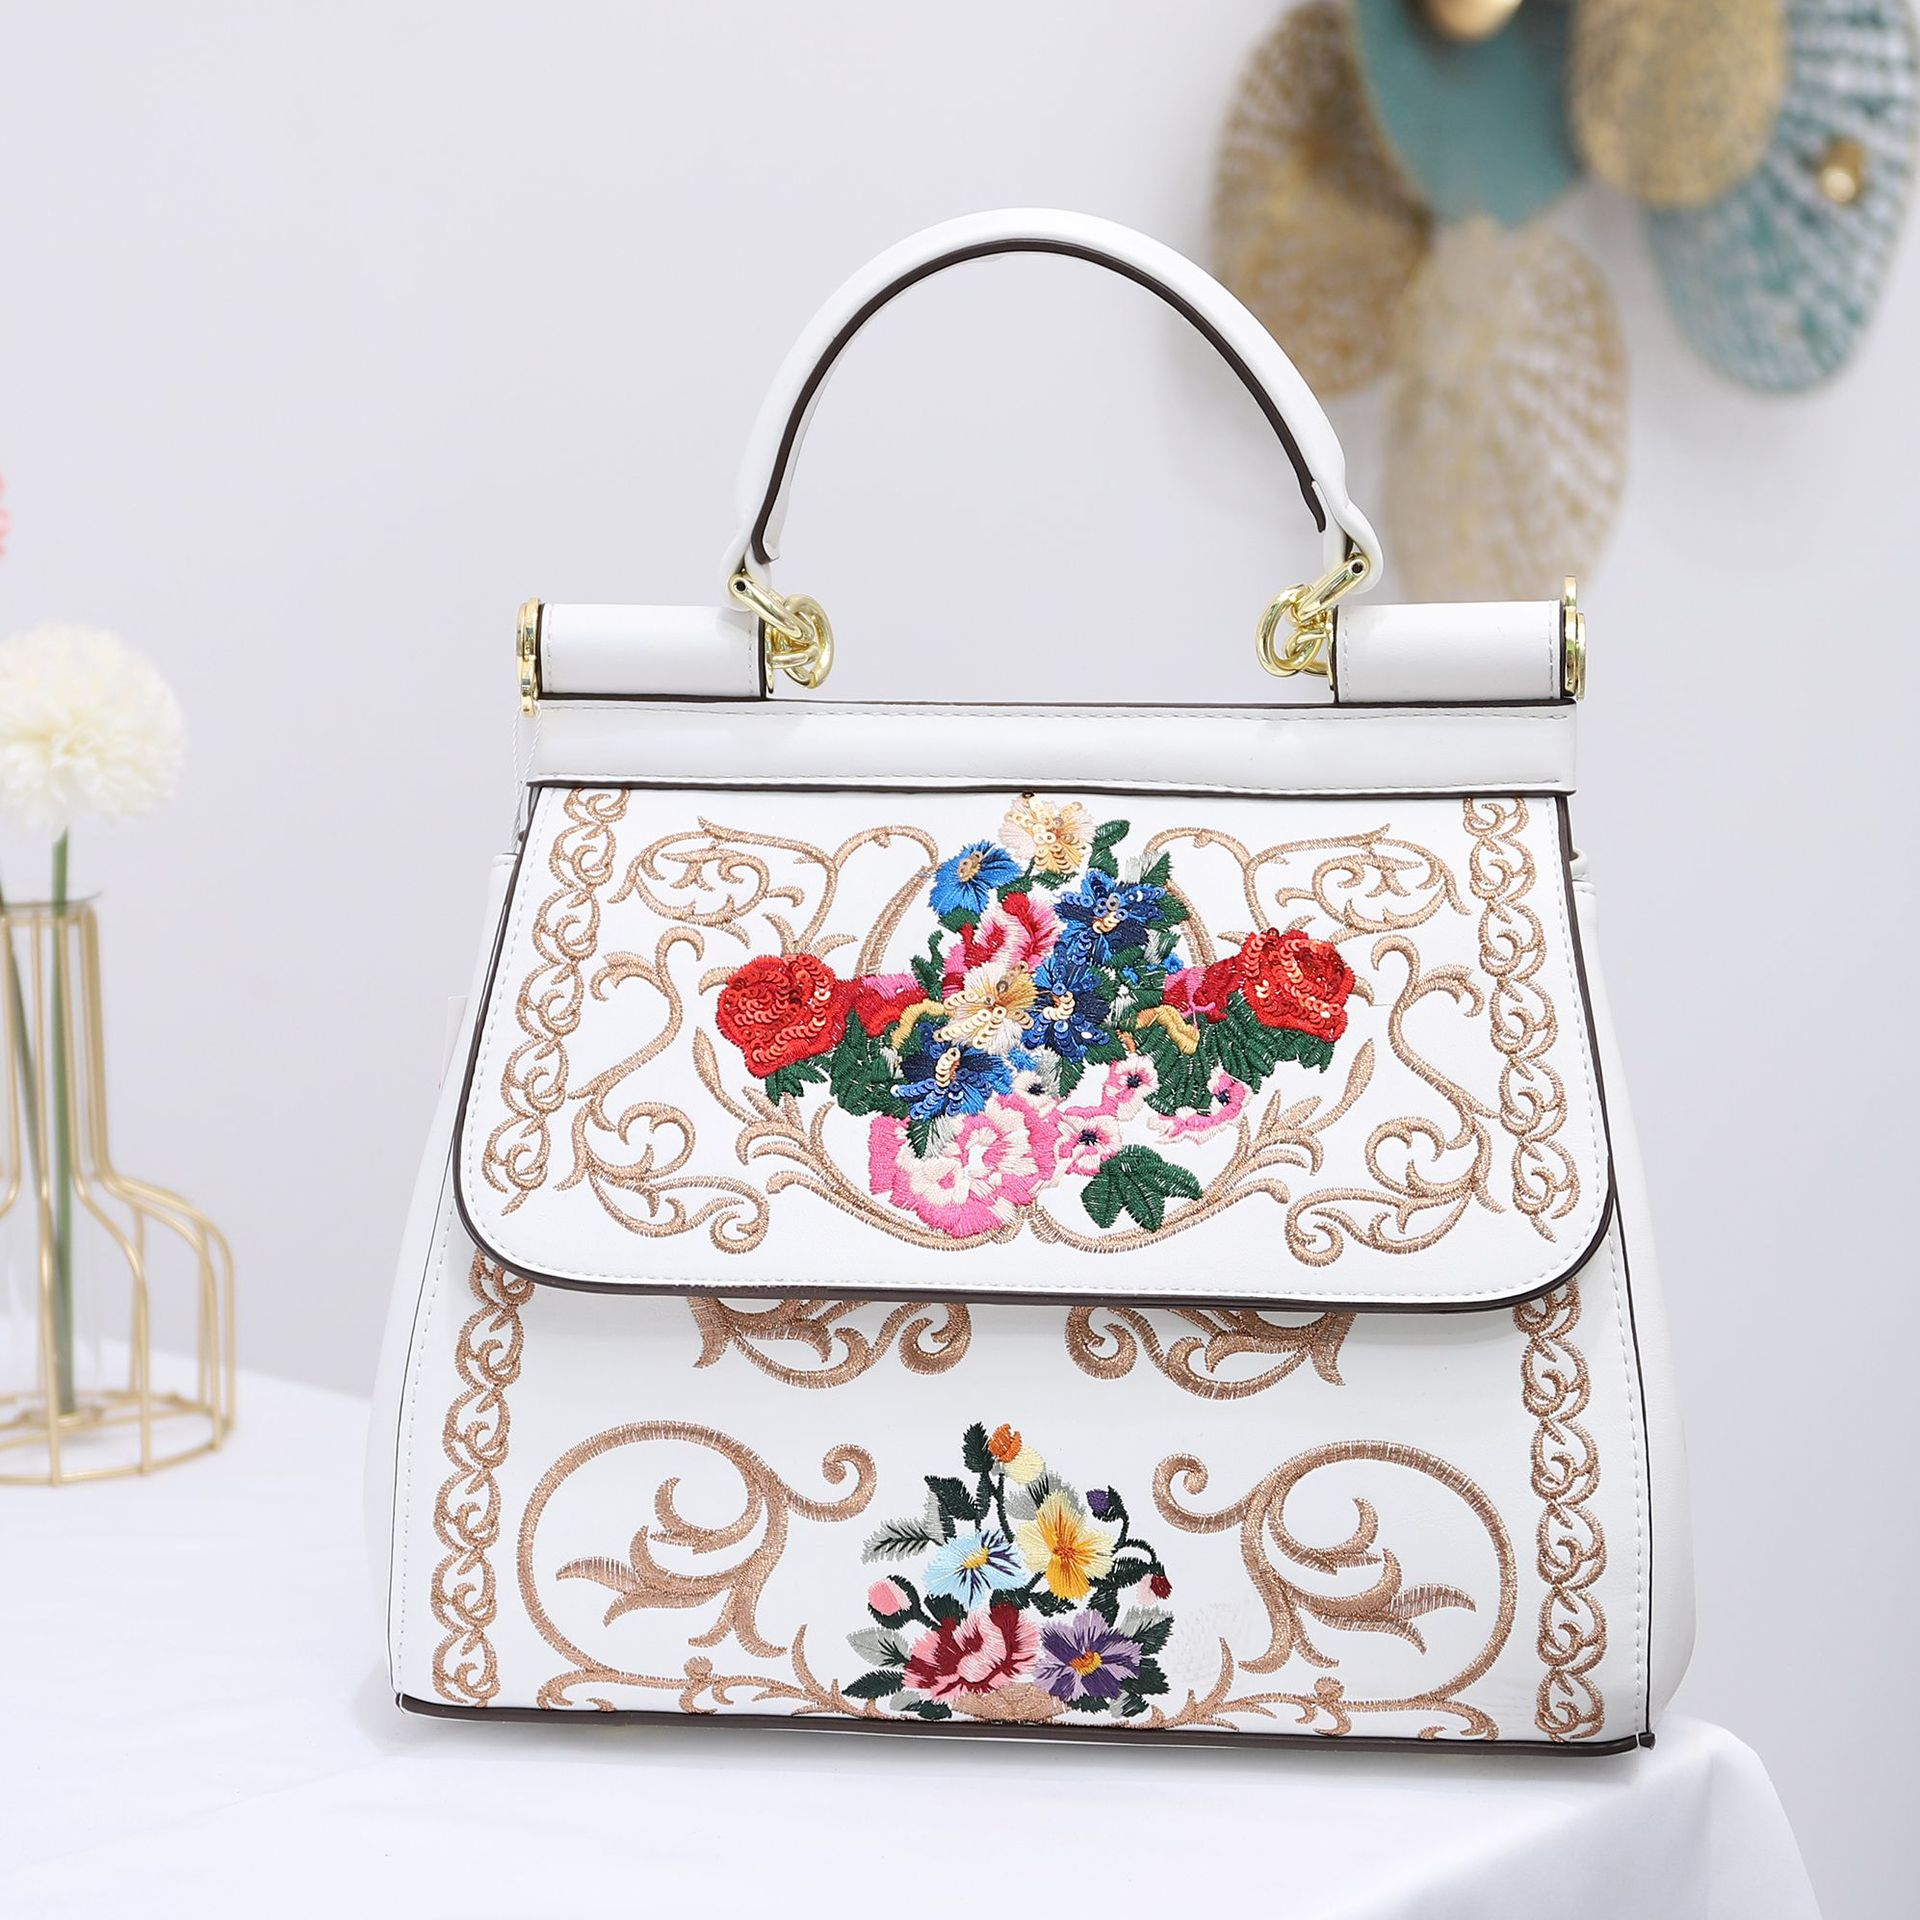 2020 Hand Carrying Shoulder Carrying Aslant Bags National Style Sequin Embroidered Flowers Handbags Fashion Ladies Bag